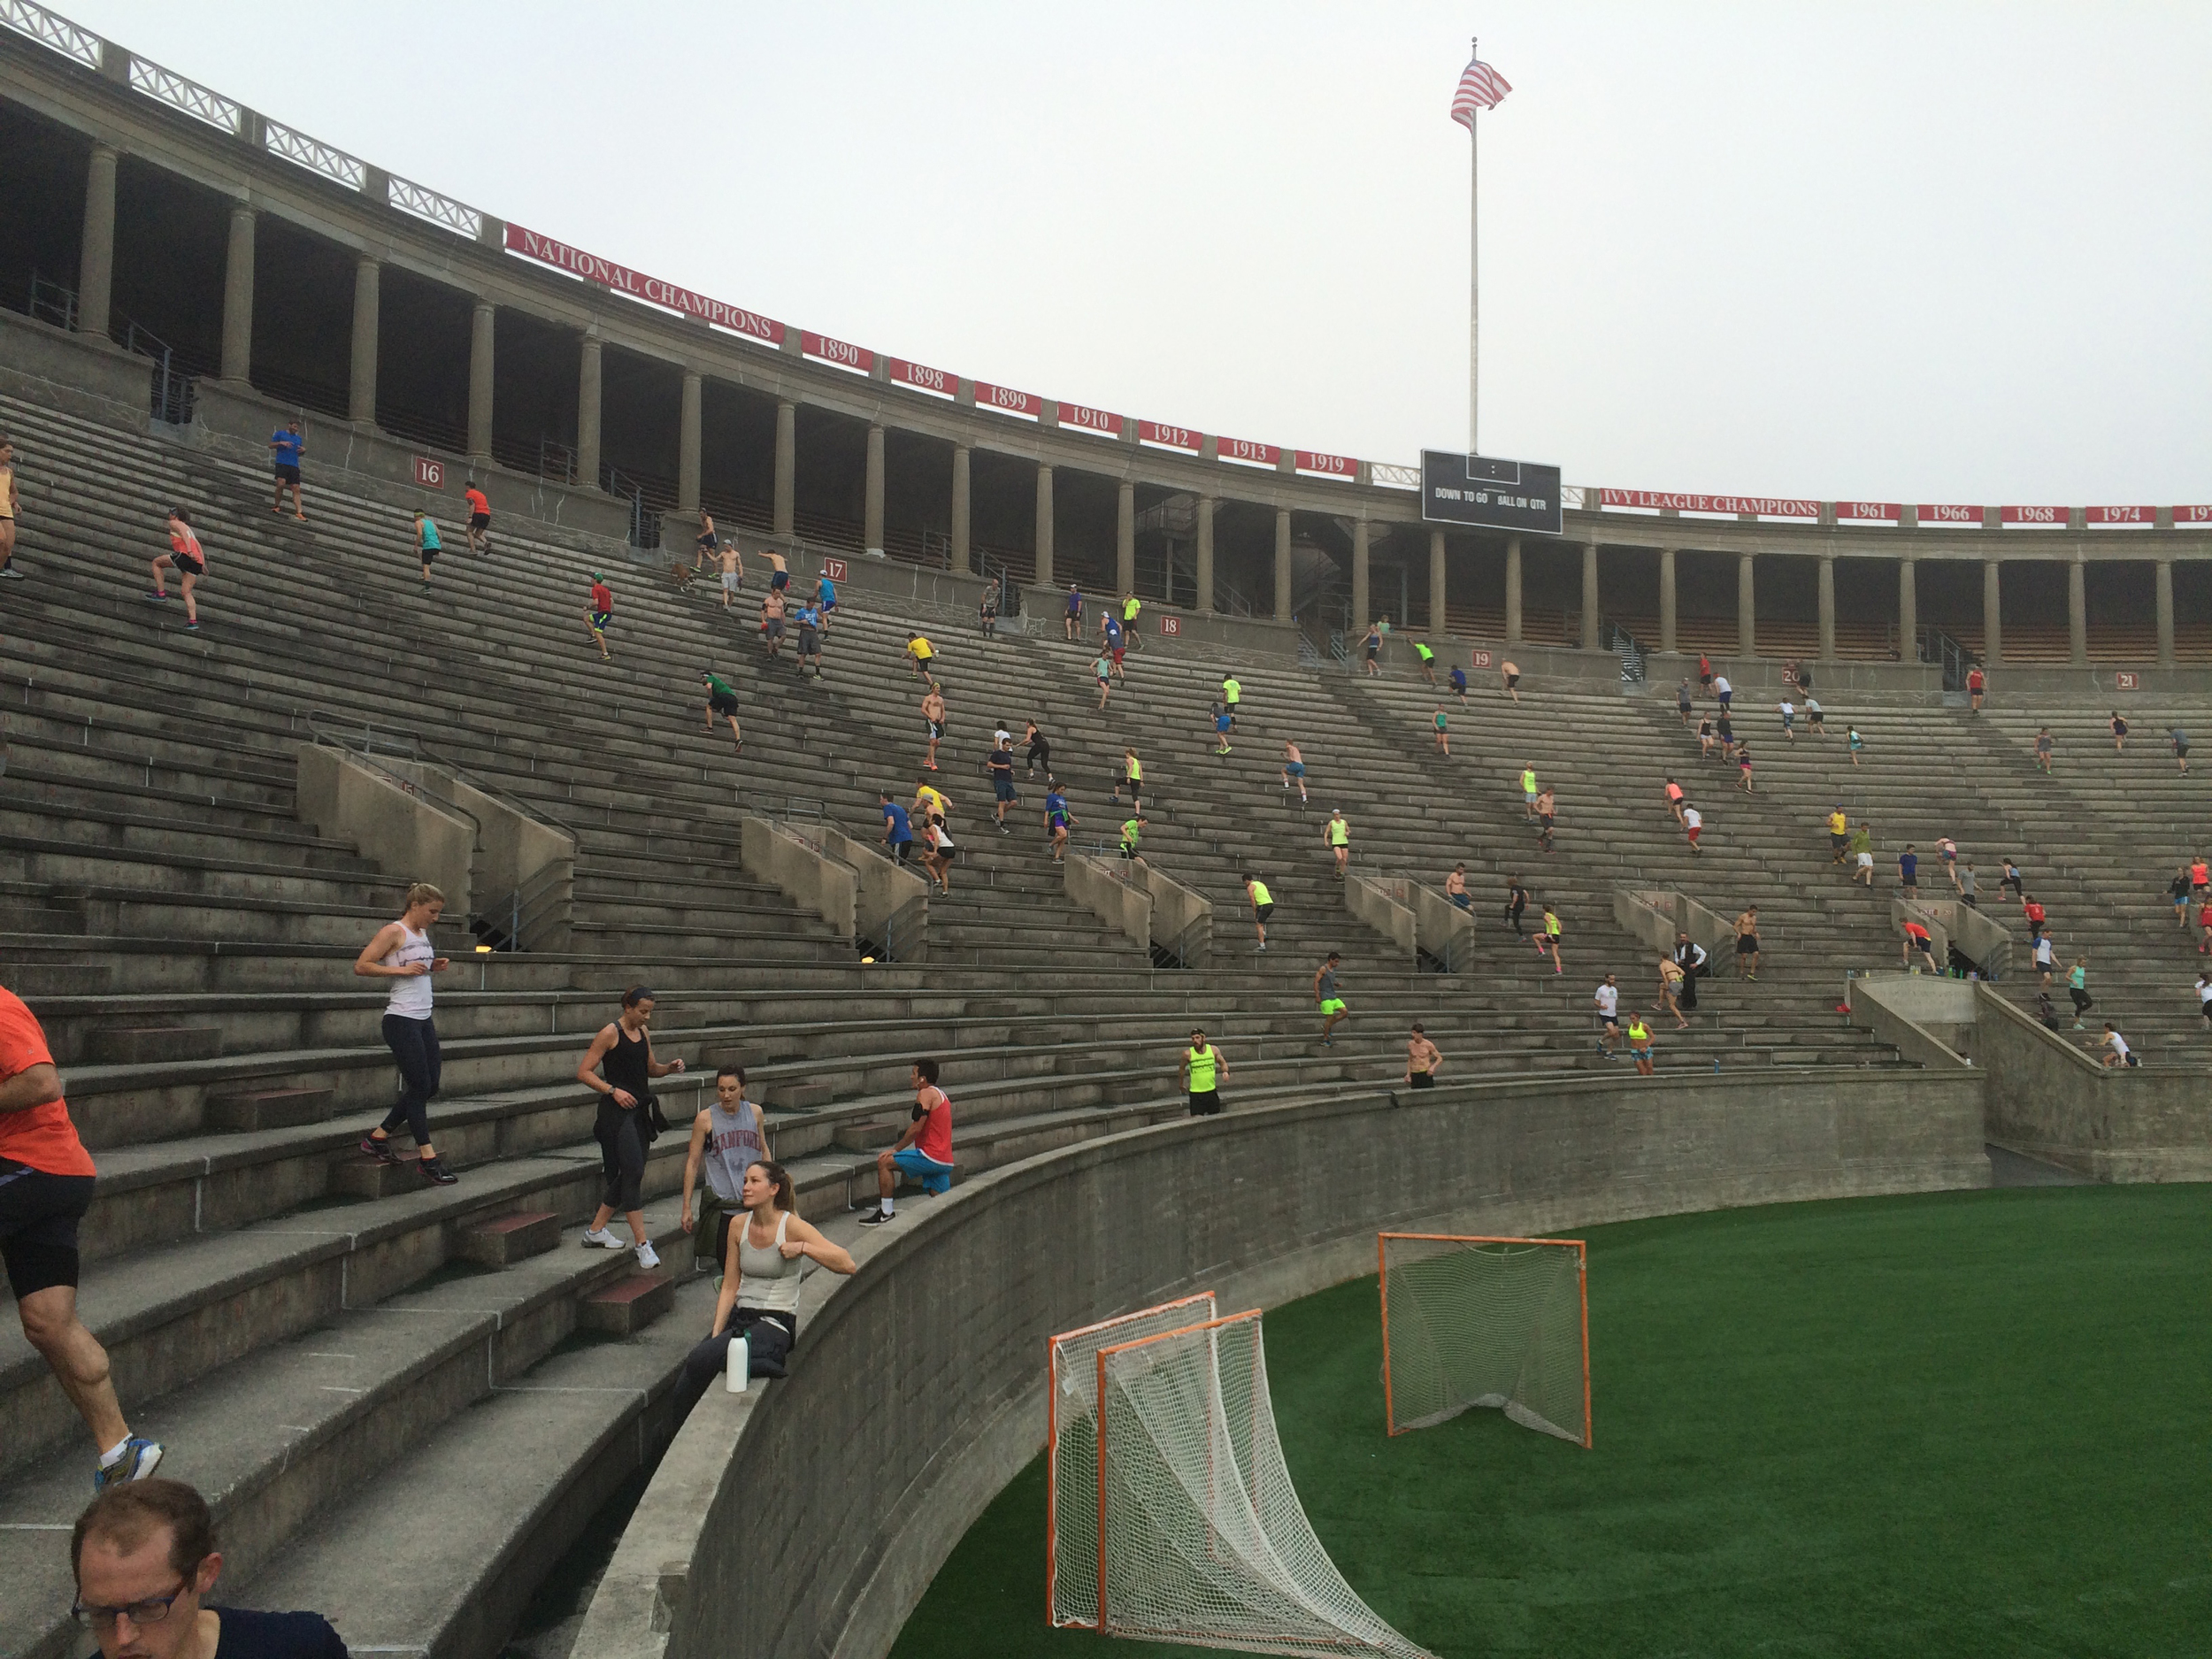 Running steps at Harvard with the November Project